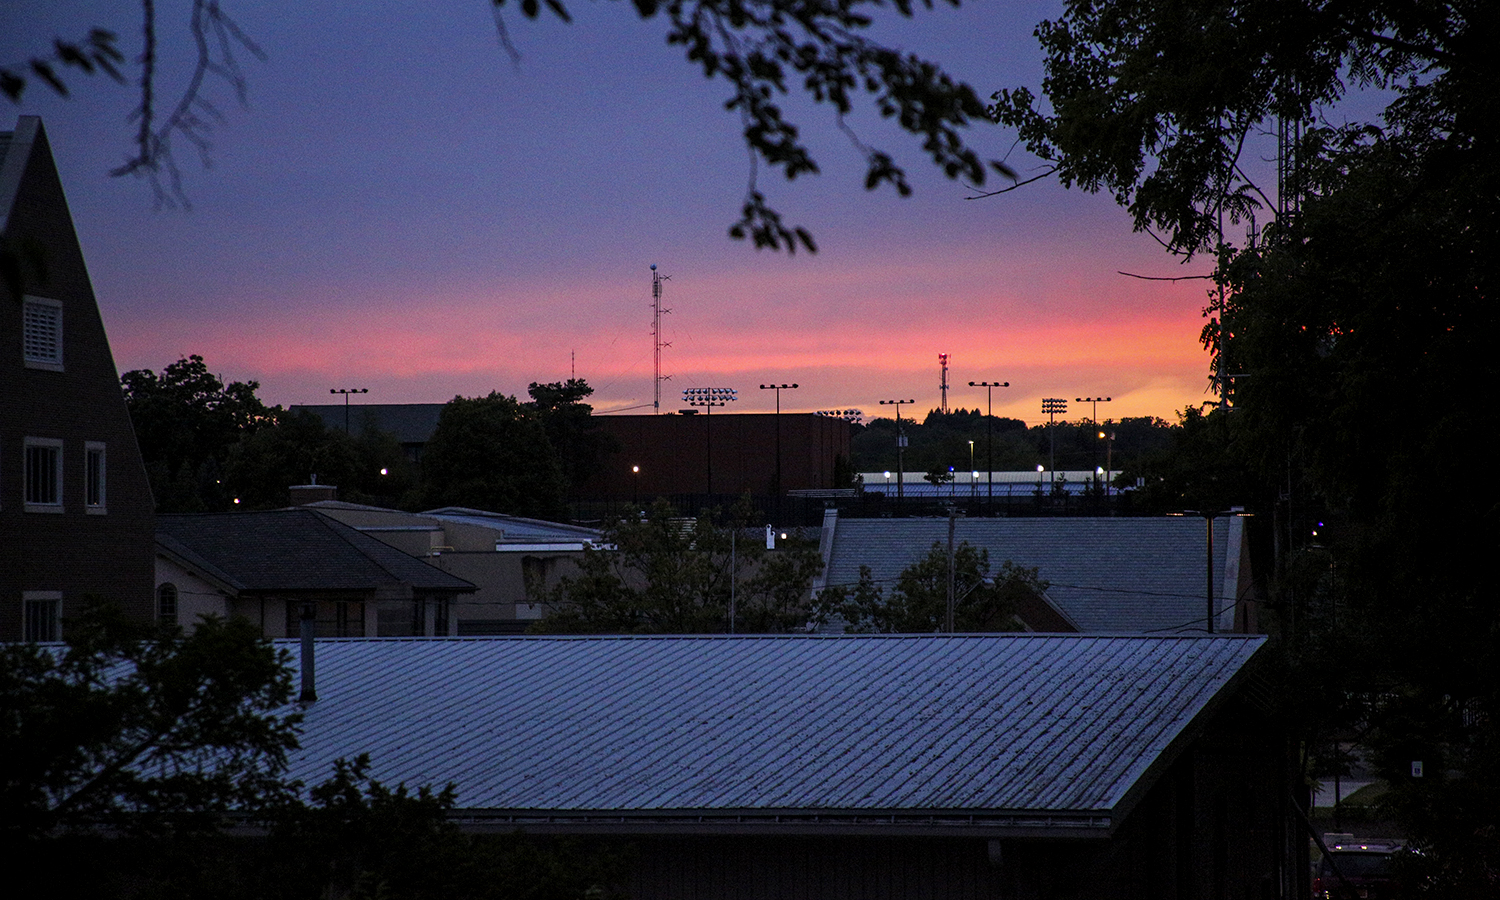 The sun sets over the Hobart and William Smith Campus.